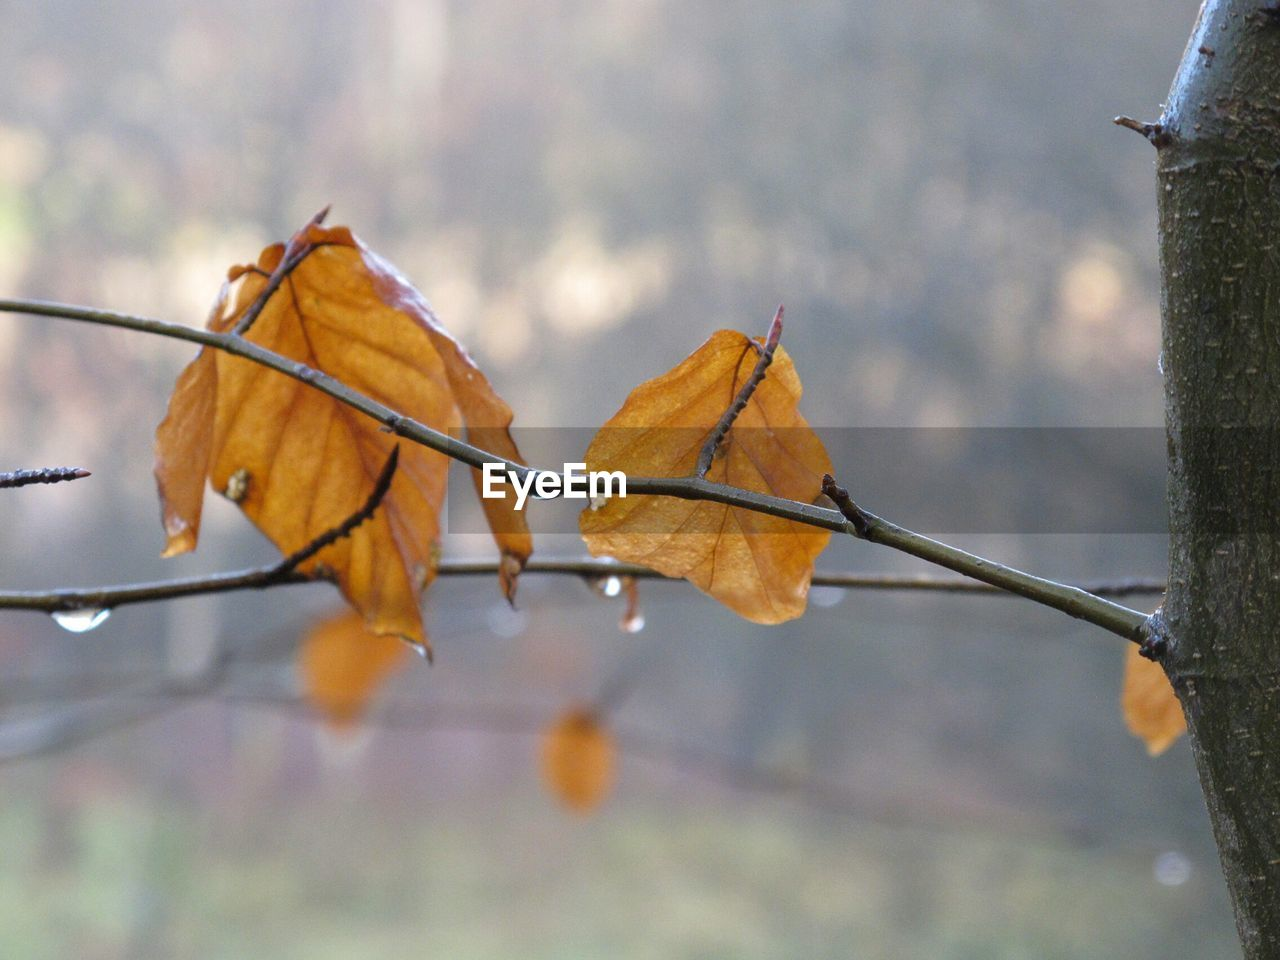 leaf, autumn, change, dry, nature, day, focus on foreground, outdoors, no people, close-up, maple, maple leaf, beauty in nature, tree, fragility